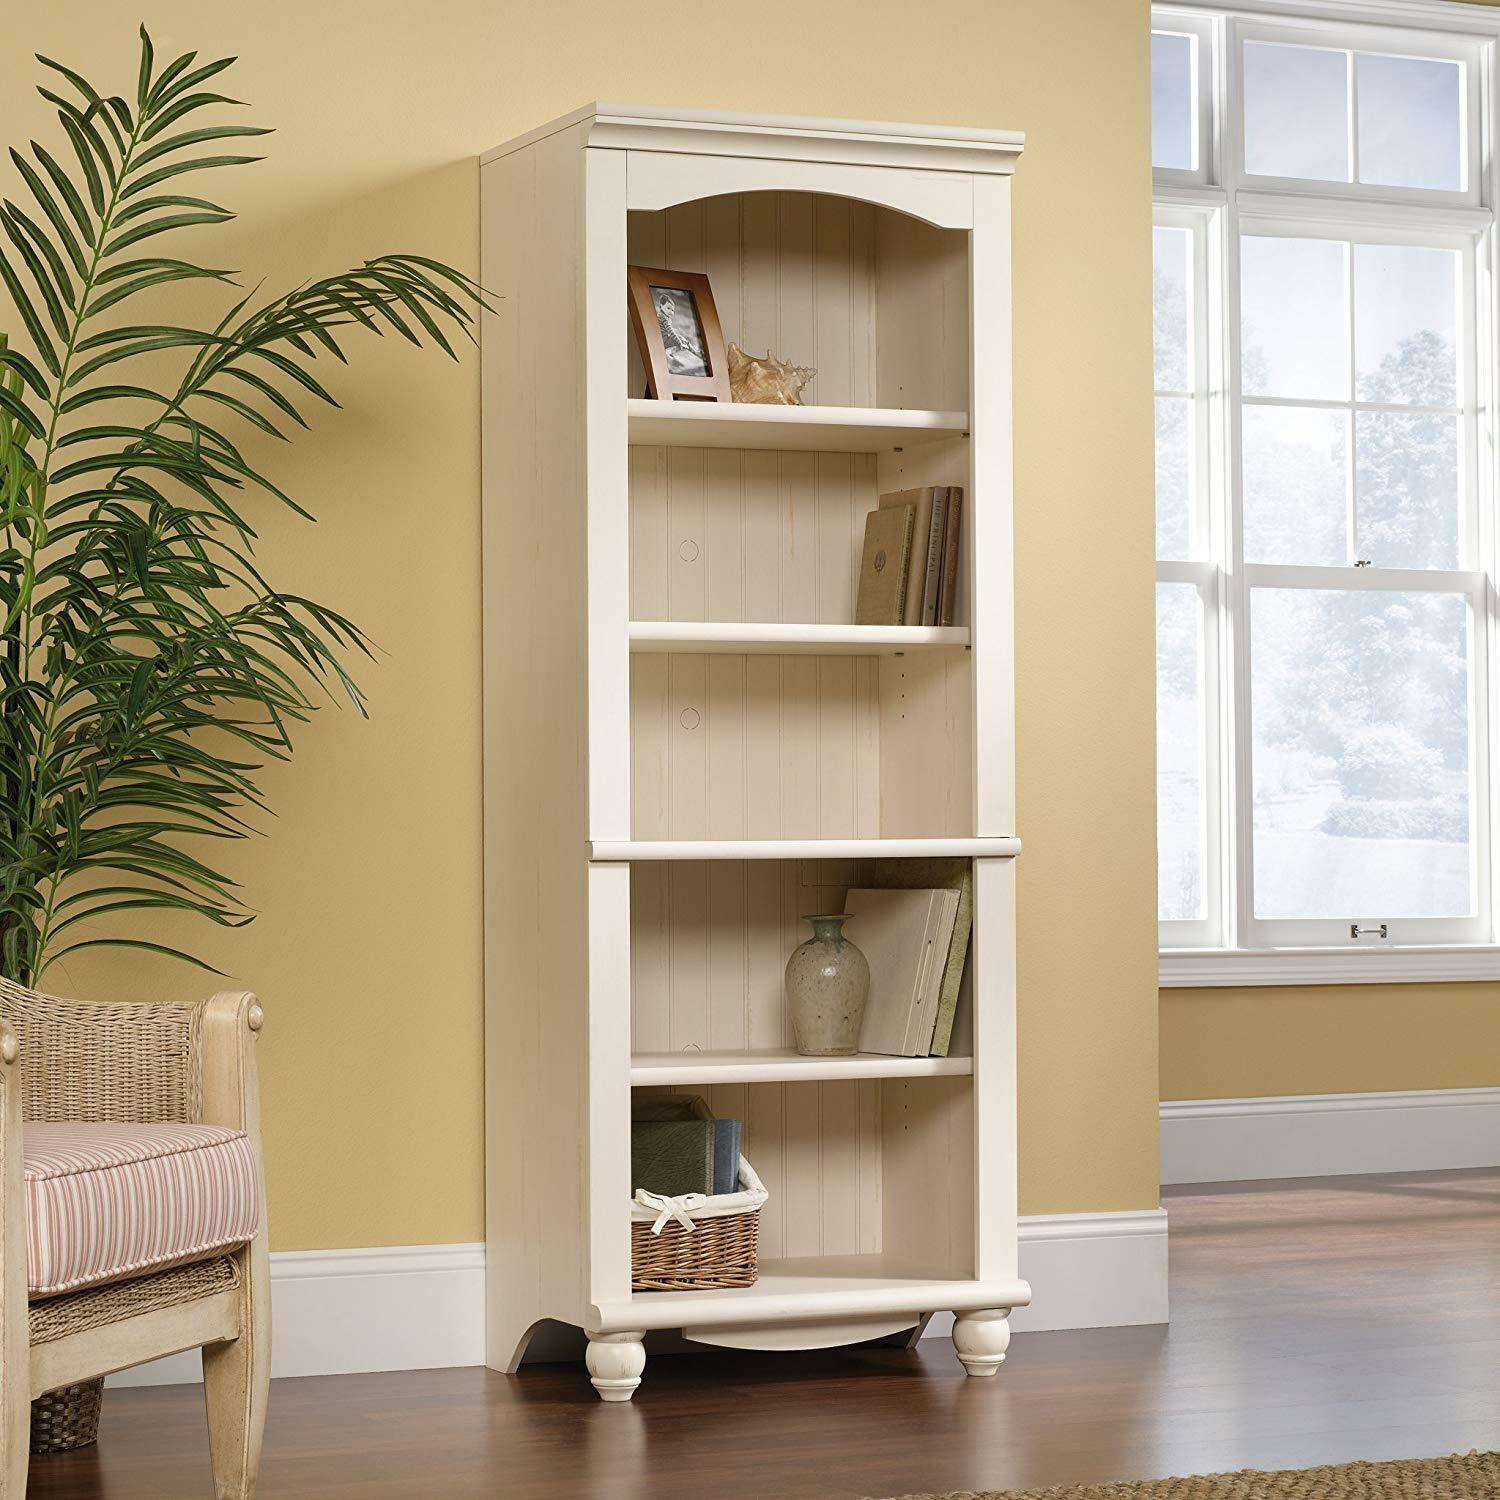 Details About Antique White Bookcase Tall Display Cabinet Wood 5 Shelf 3 Adjustable Shelves